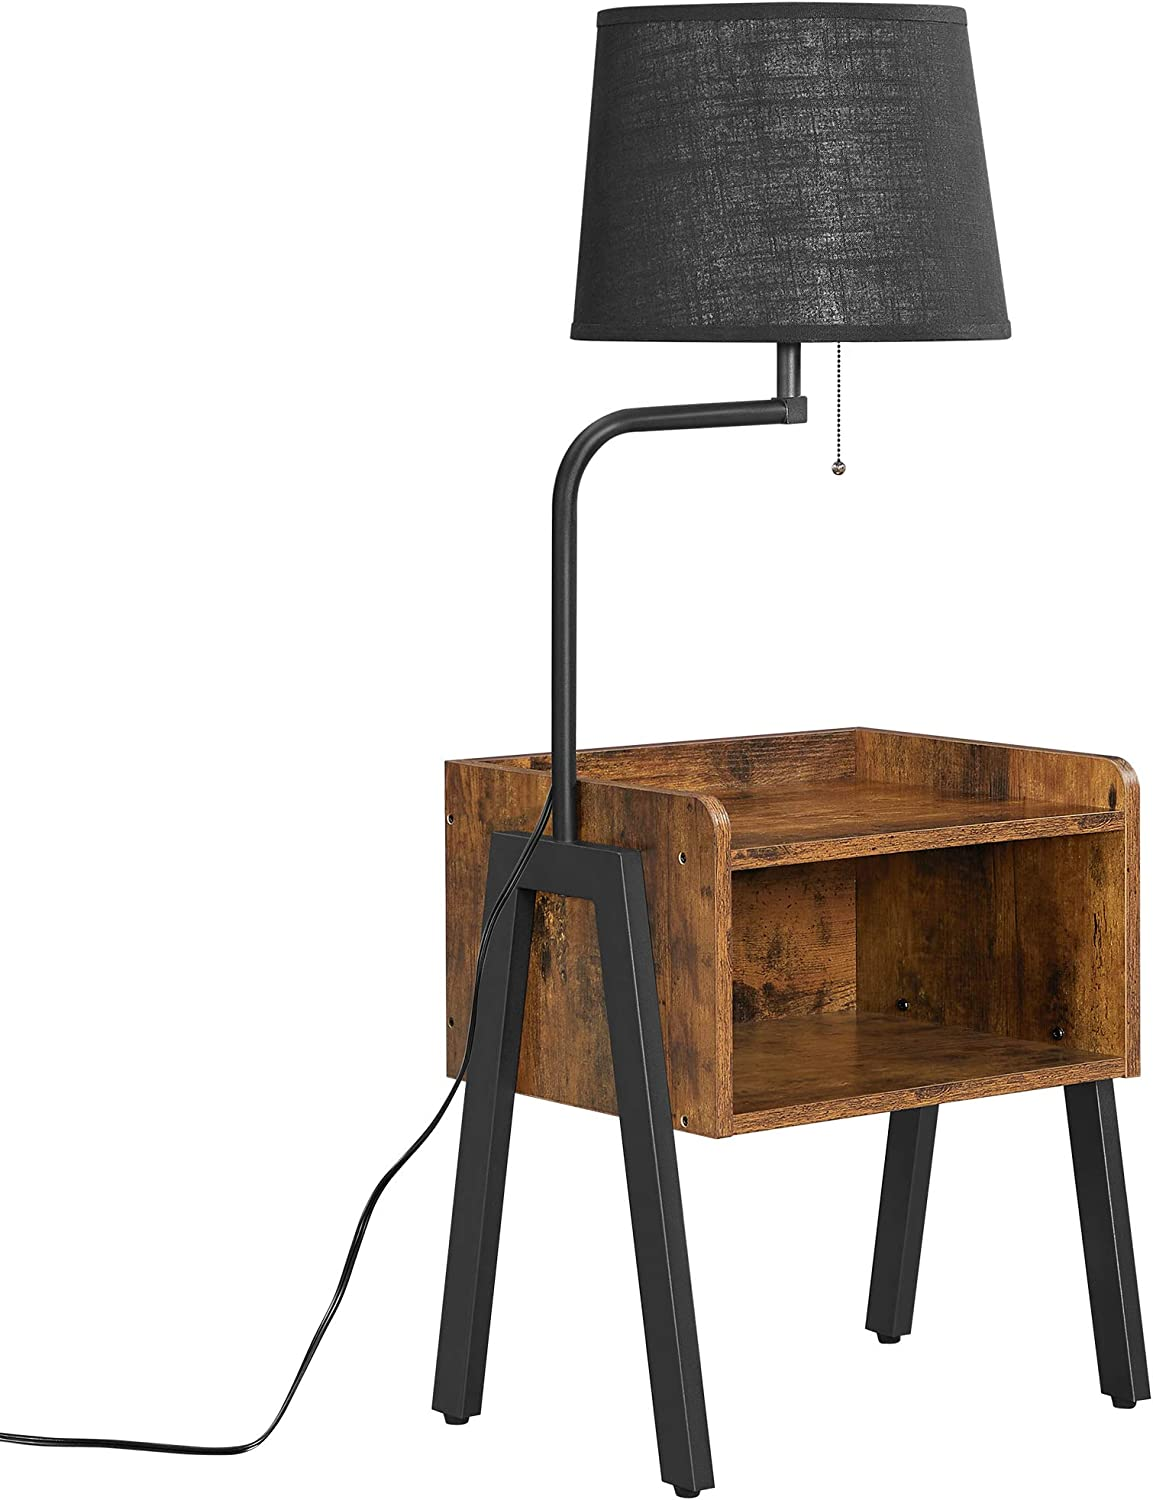 VASAGLE Max 71% OFF Nightstand with Lamp Bedside Sofa Inexpensive Table Side End